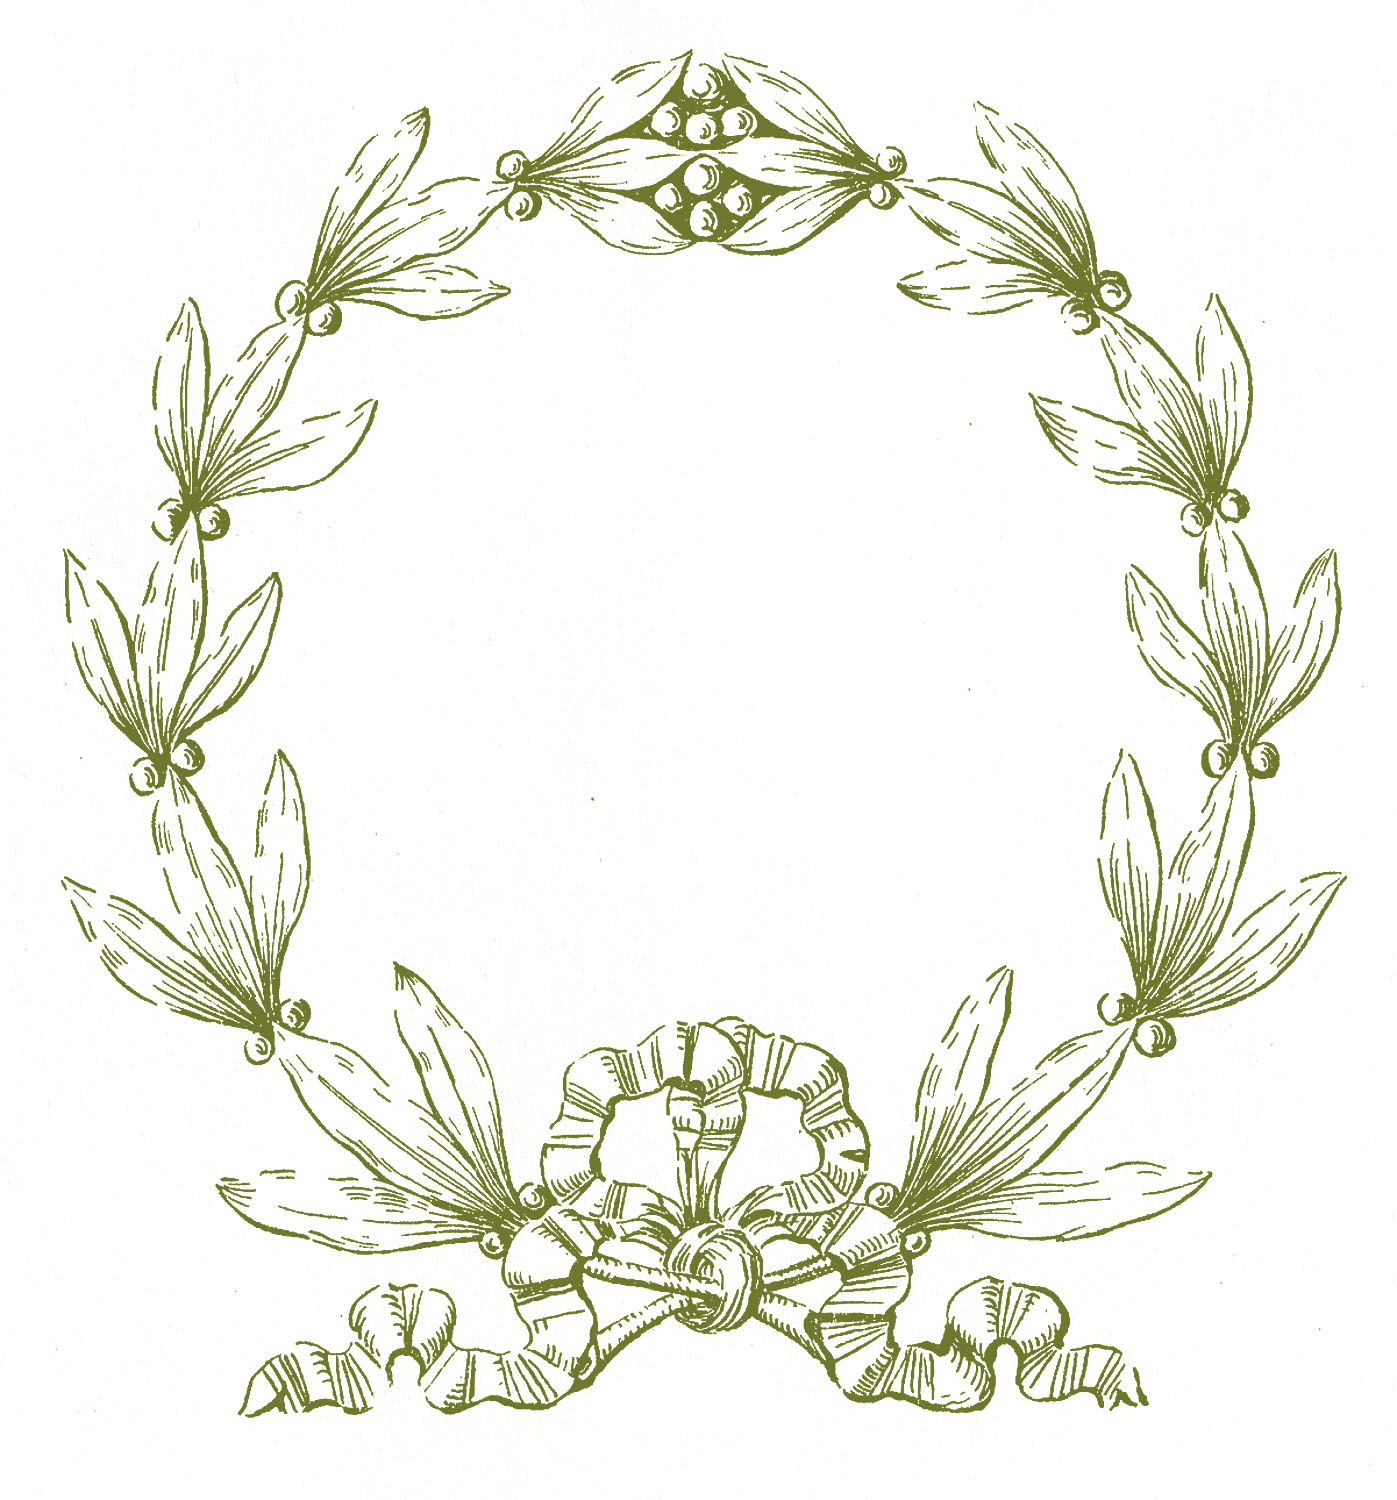 Vintage Christmas Clip Art - Laurel Wreath Frame - The ...